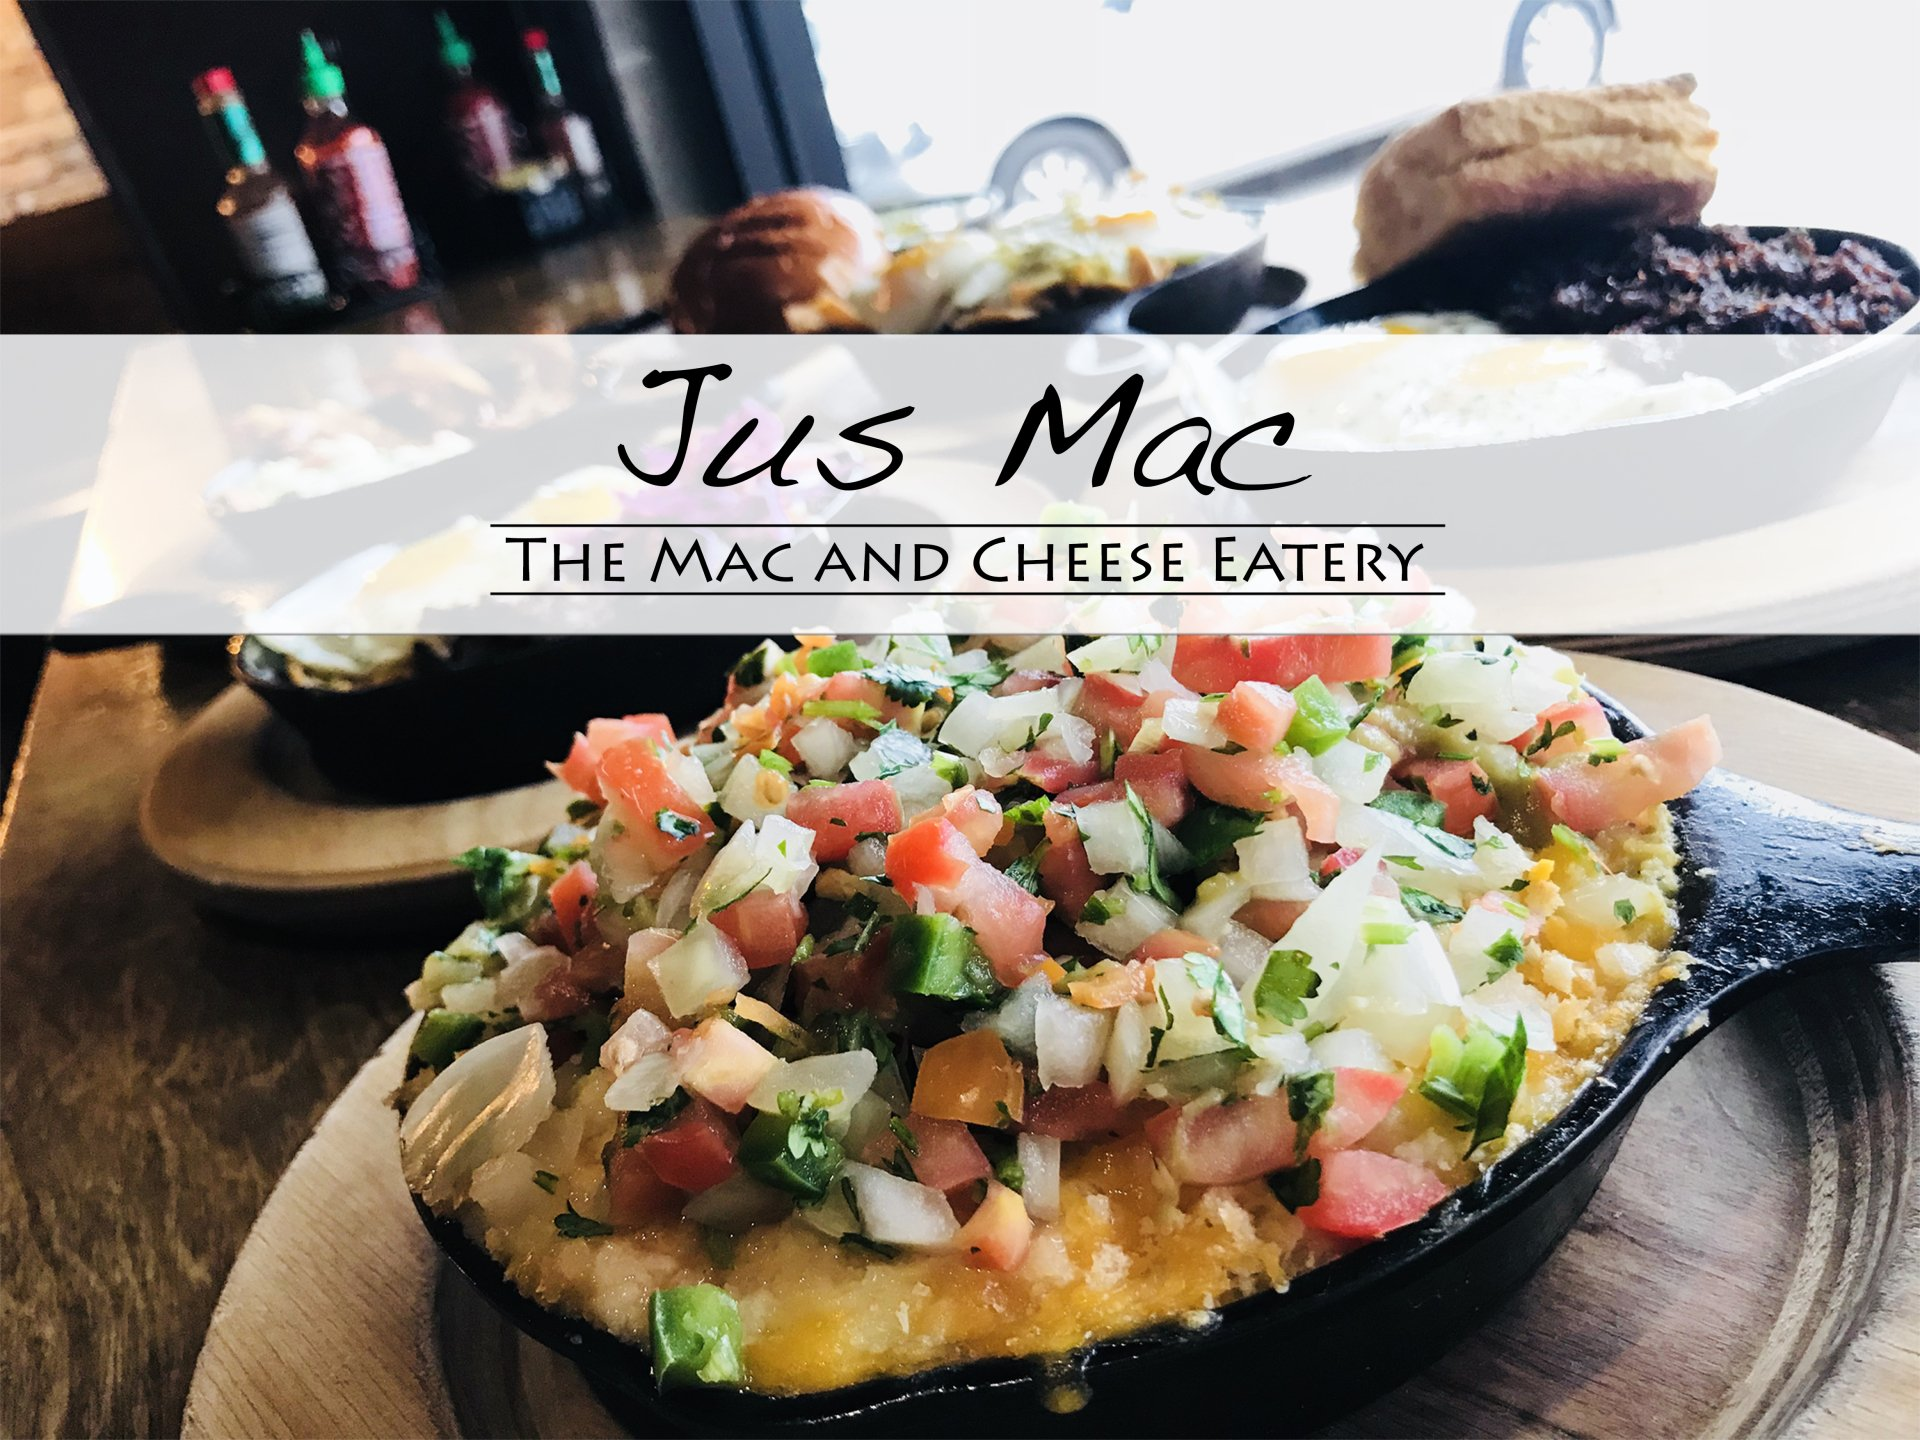 Jus Mac Eatery Houston Mac And Cheese Restaurant